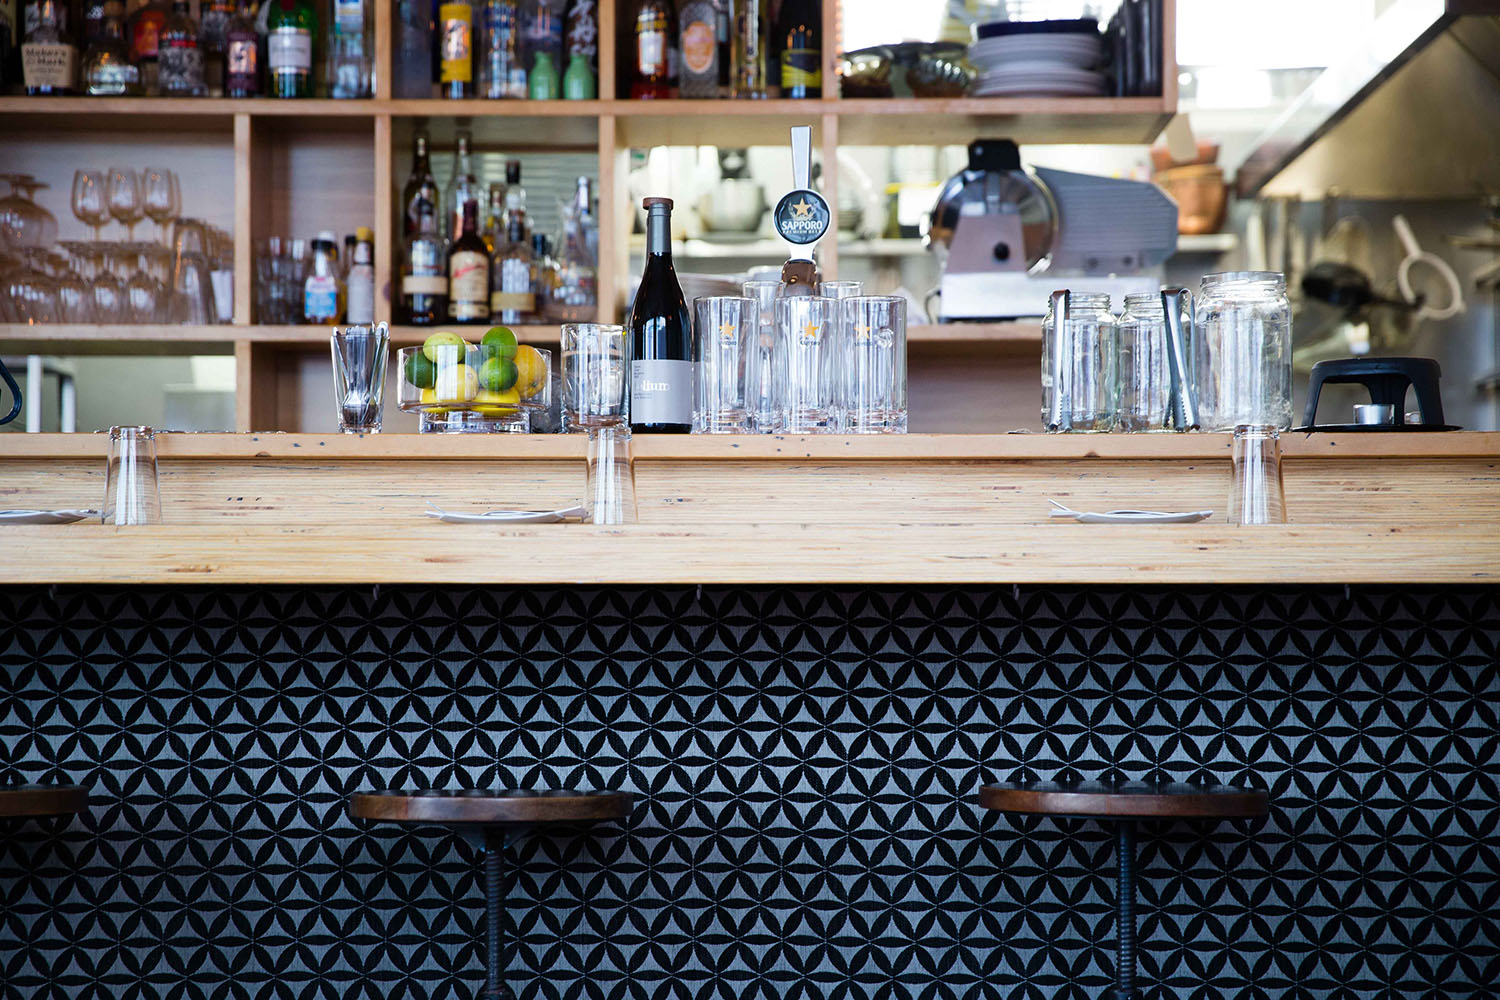 Signature Style for a Wellington Gem - We helped set the scene at WBC, one of Wellington's favourite haunts.